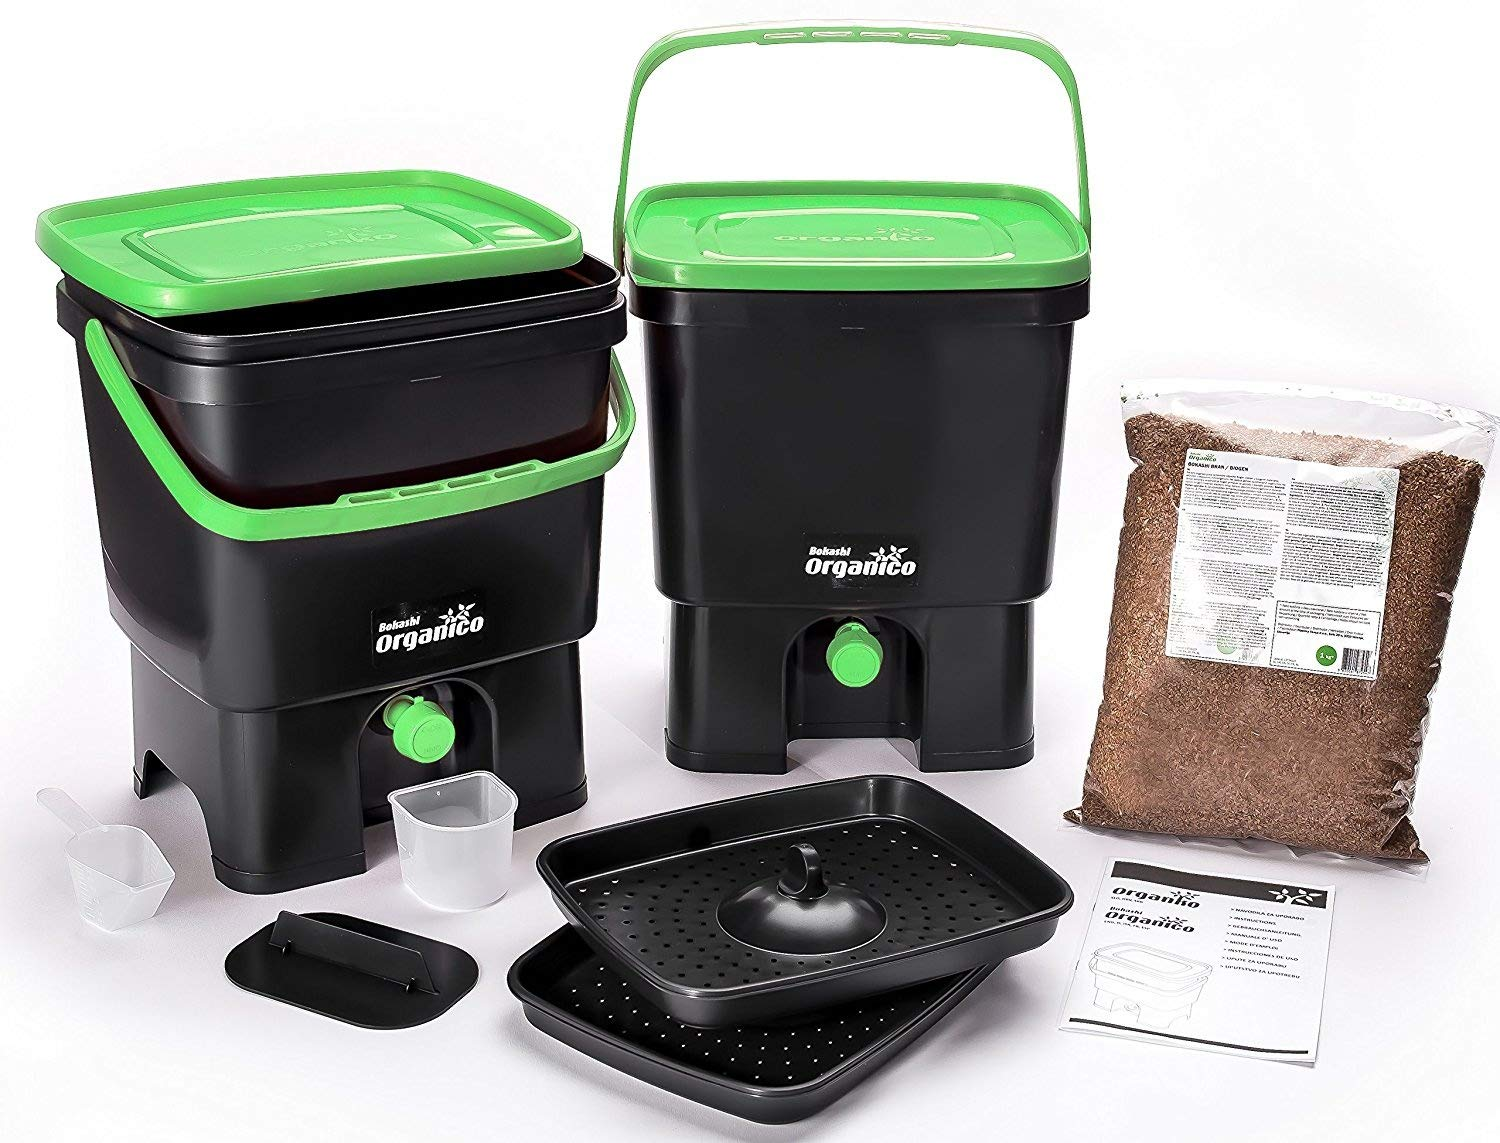 Skaza - mind your eco - Compostador para Cocina, Color Negro y Verde